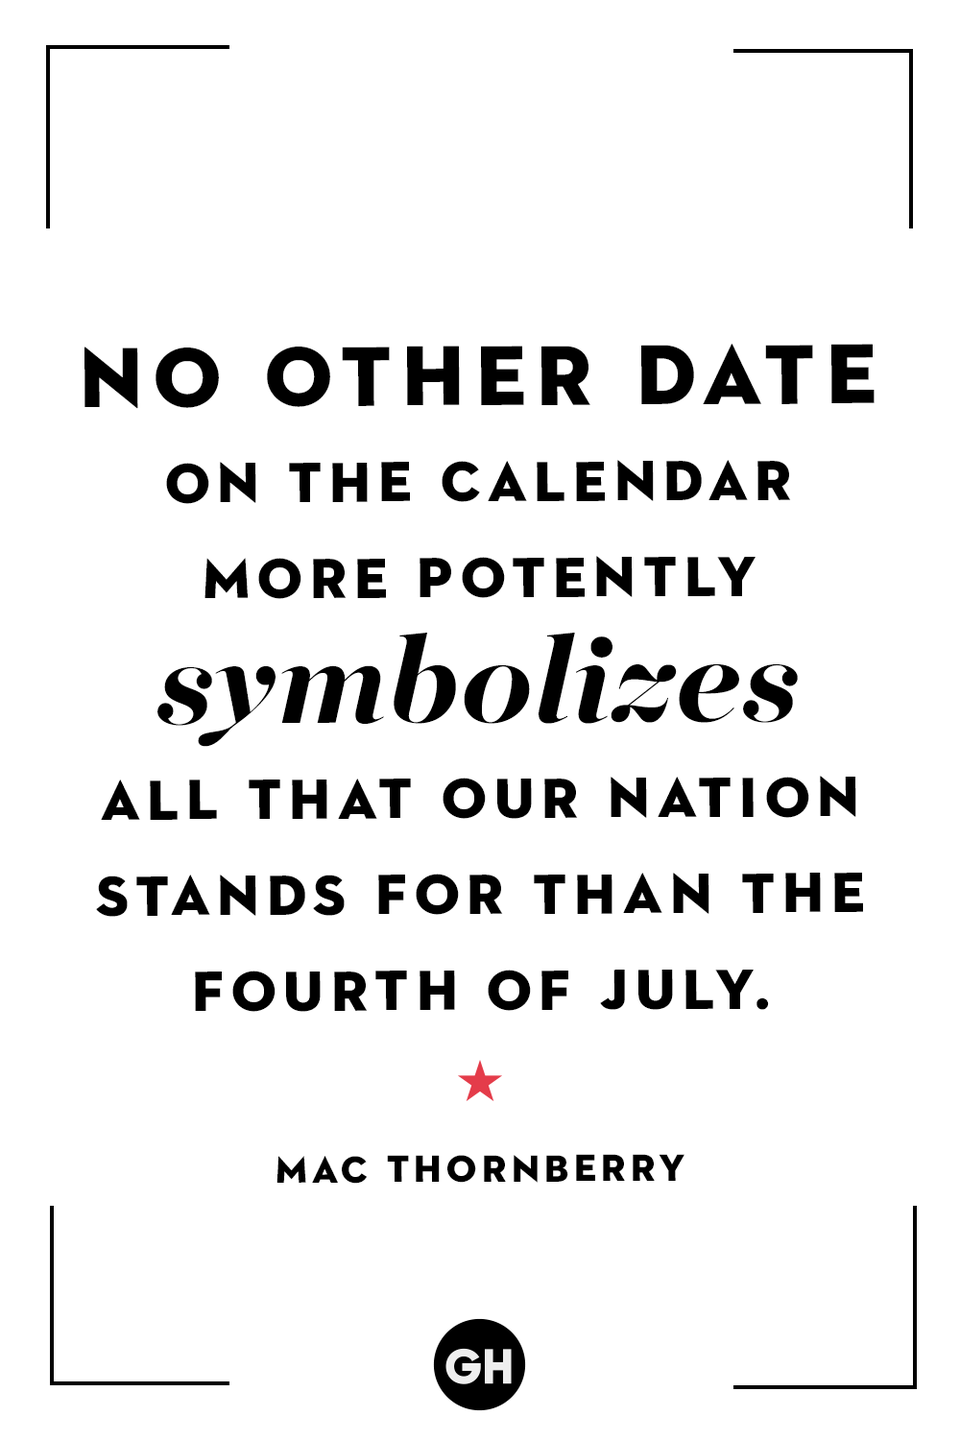 <p>No other date on the calendar more potently symbolizes all that our nation stands for than the Fourth of July.</p>